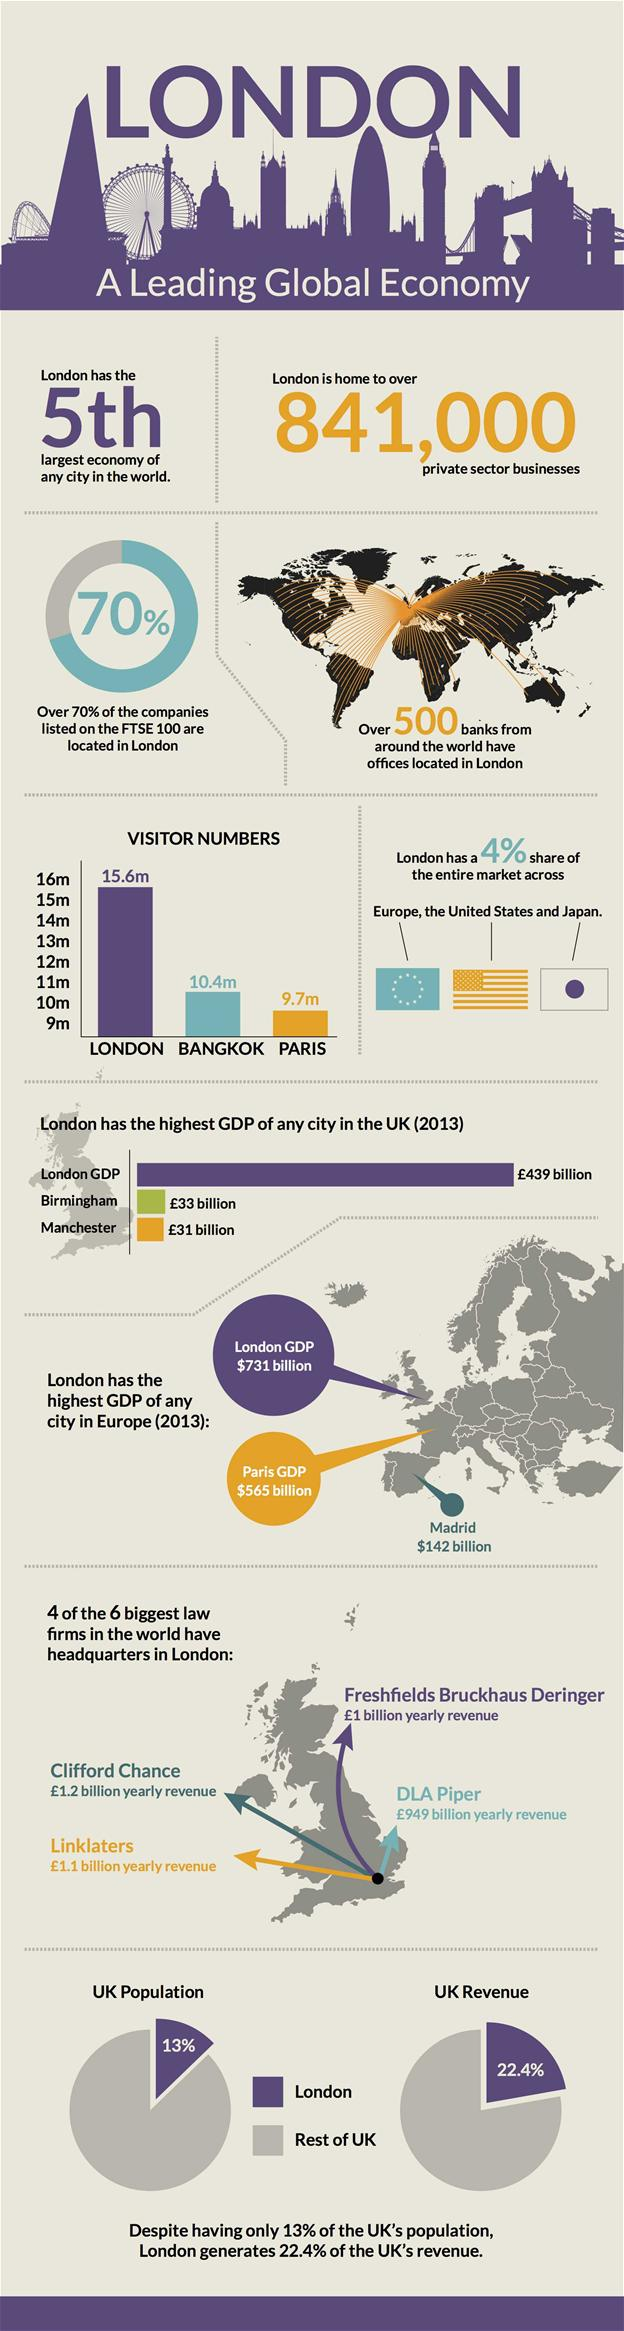 London – A Leading Global Economy